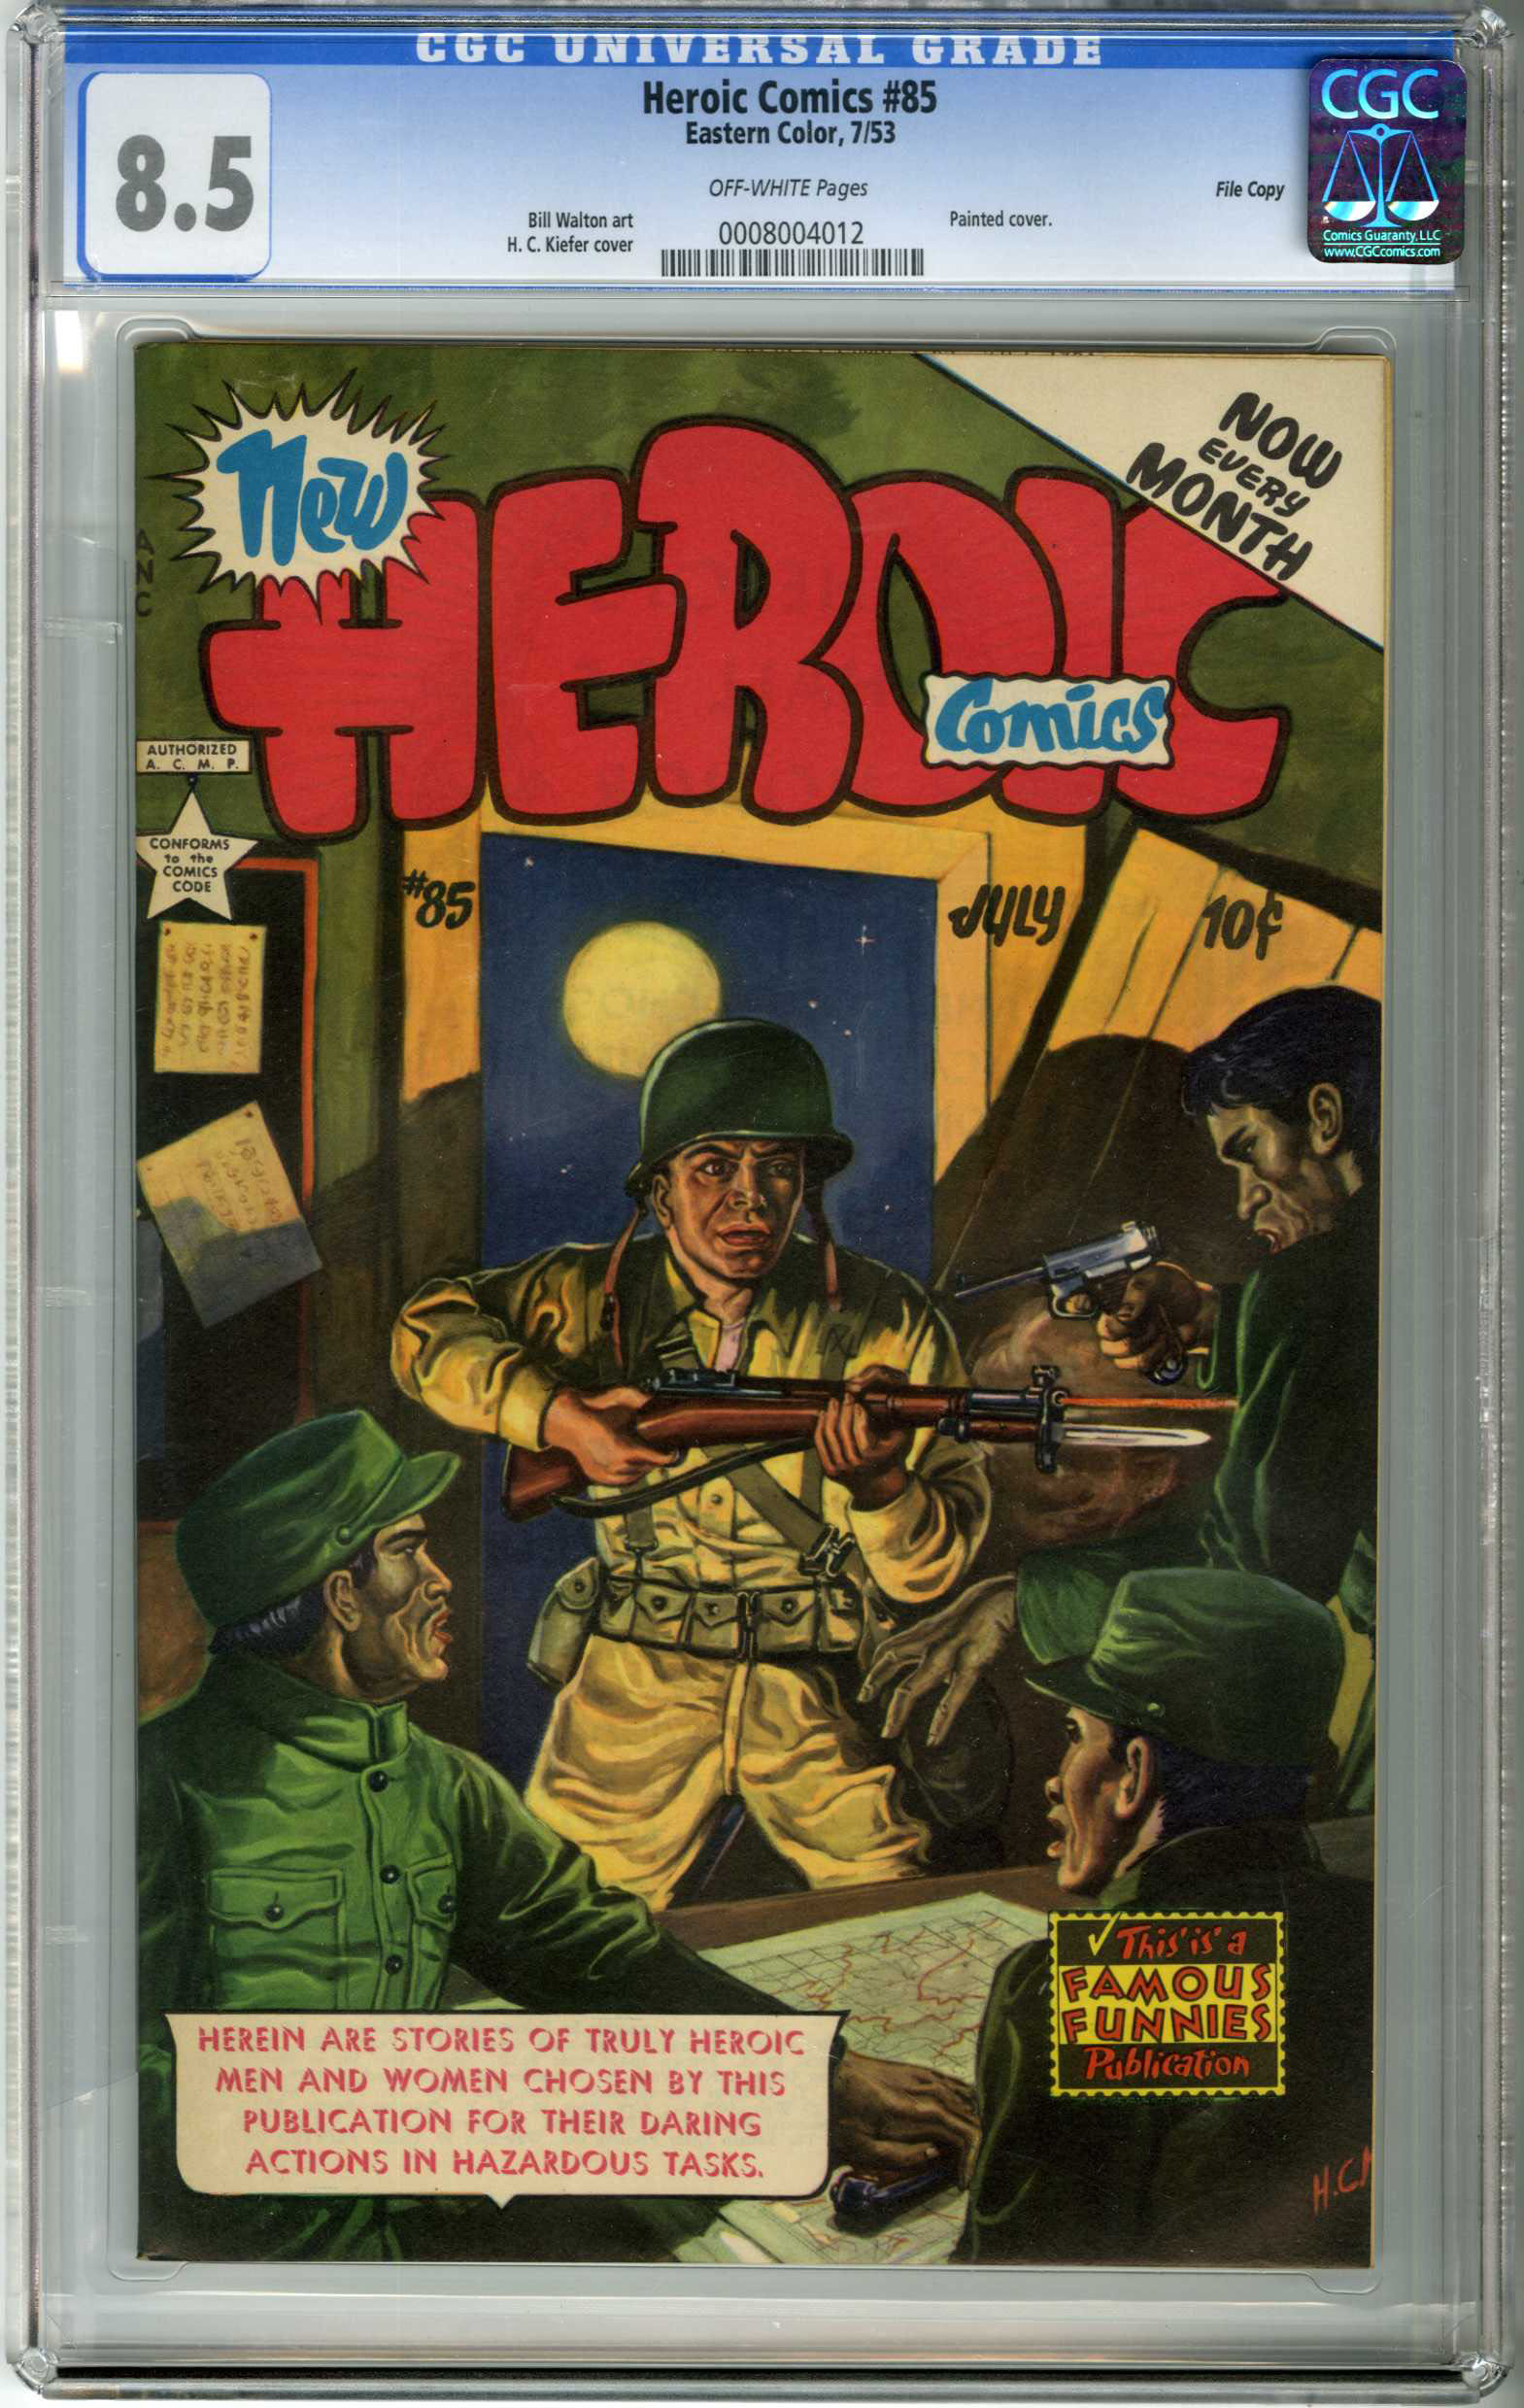 HEROIC COMICS #85 (1953) CGC VF+ 8.5 OW Pages / FILE COPY / H.C. KIEFER COVER